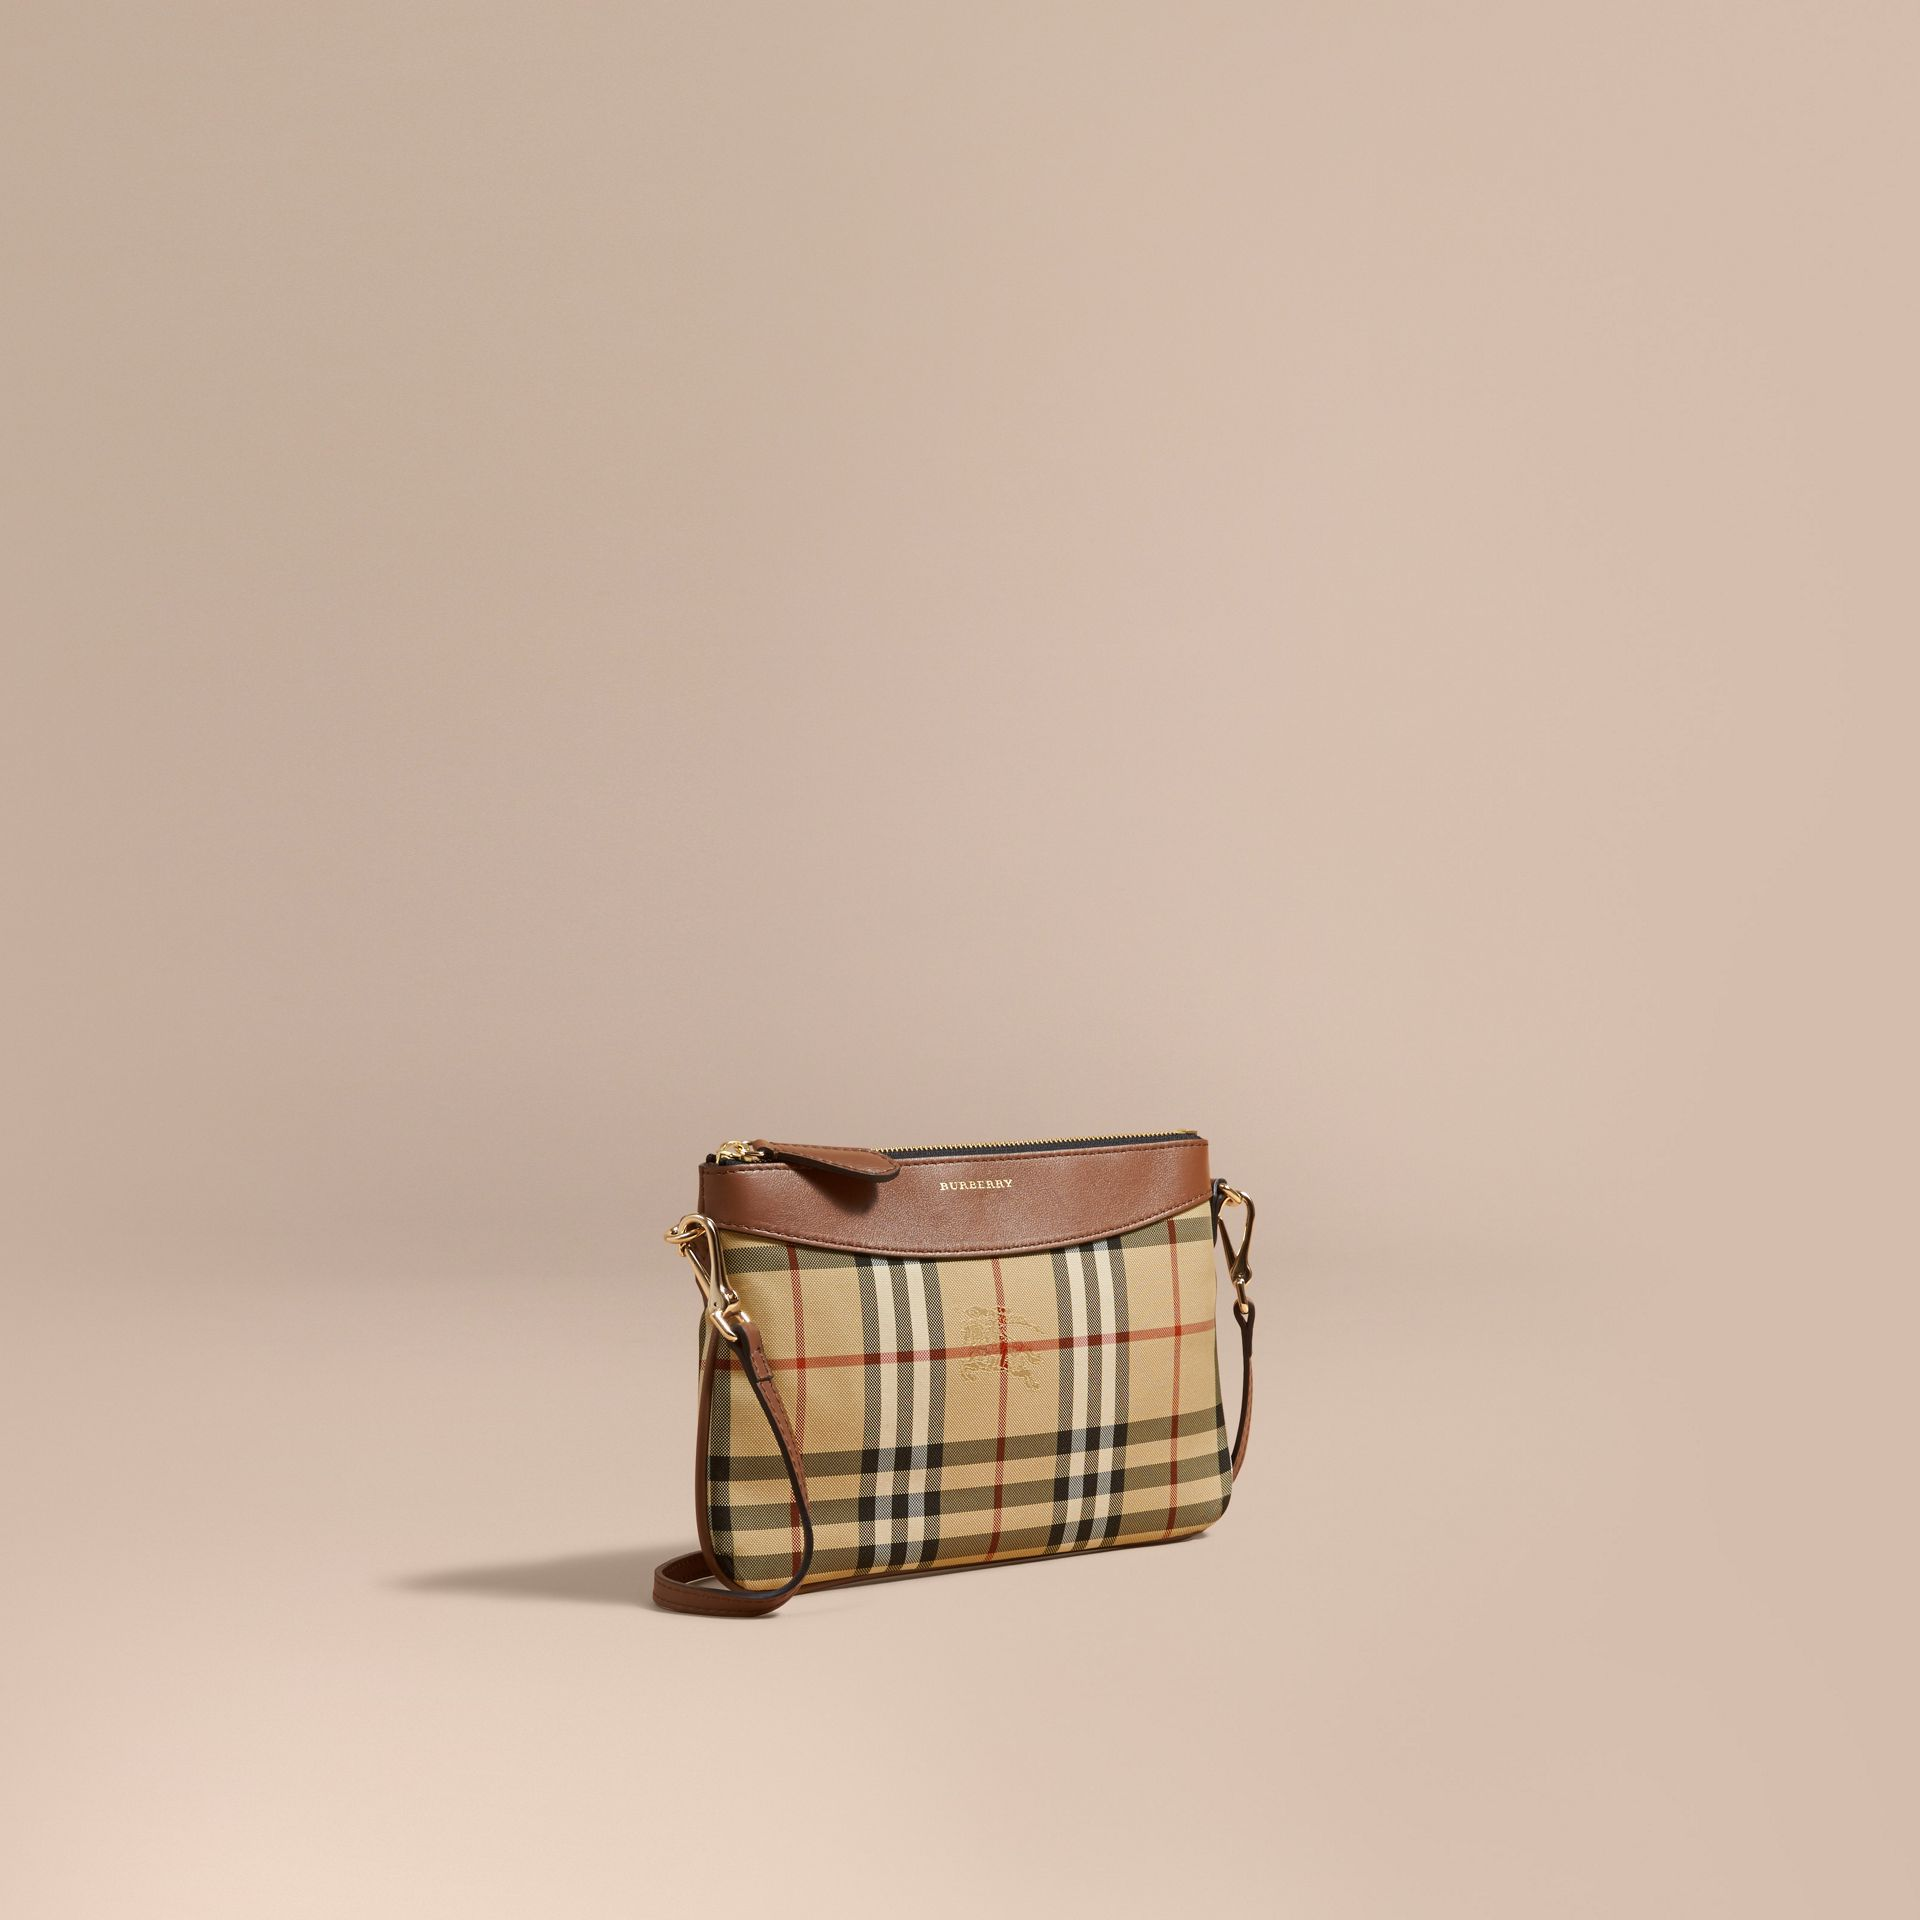 Tan Horseferry Check and Leather Clutch Bag Tan - gallery image 1